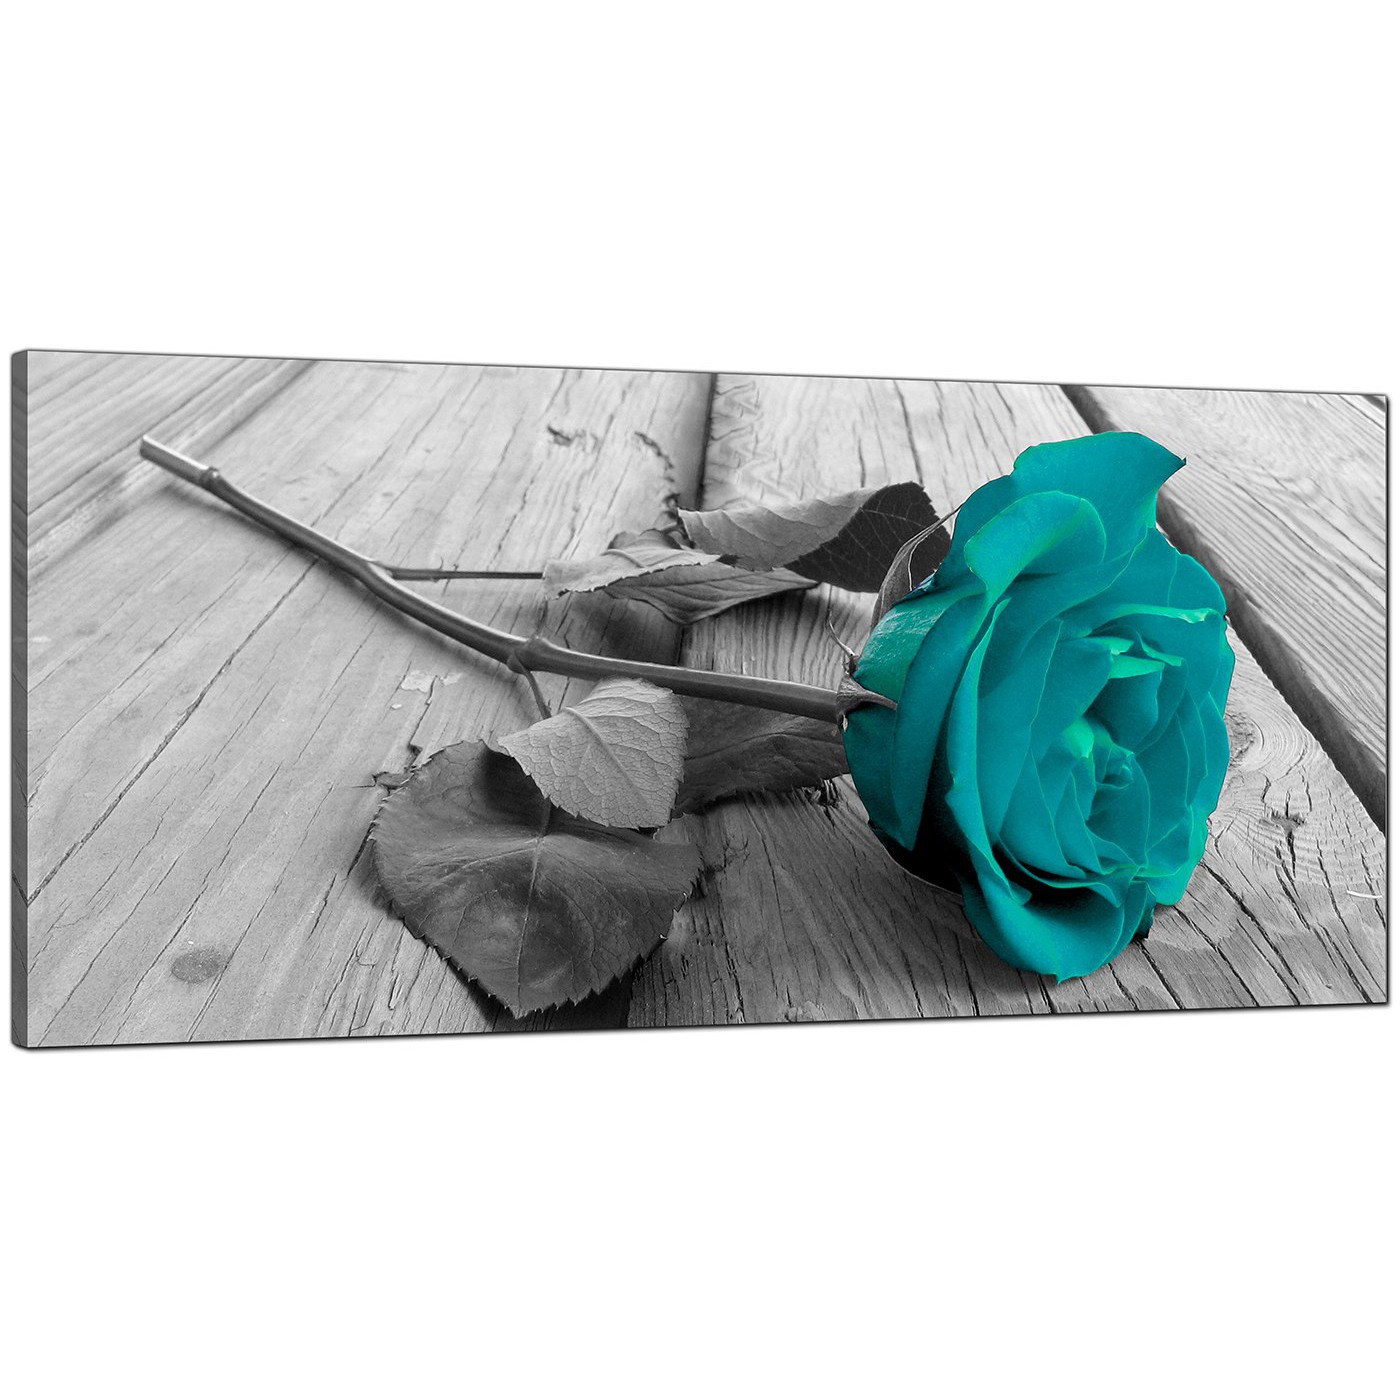 Display Gallery Item 4; Black-White Living Room Large Floral Canvas Display Gallery Item 5  sc 1 st  Wallfillers & Modern Black and White Canvas Wall Art of a Teal Rose Flower